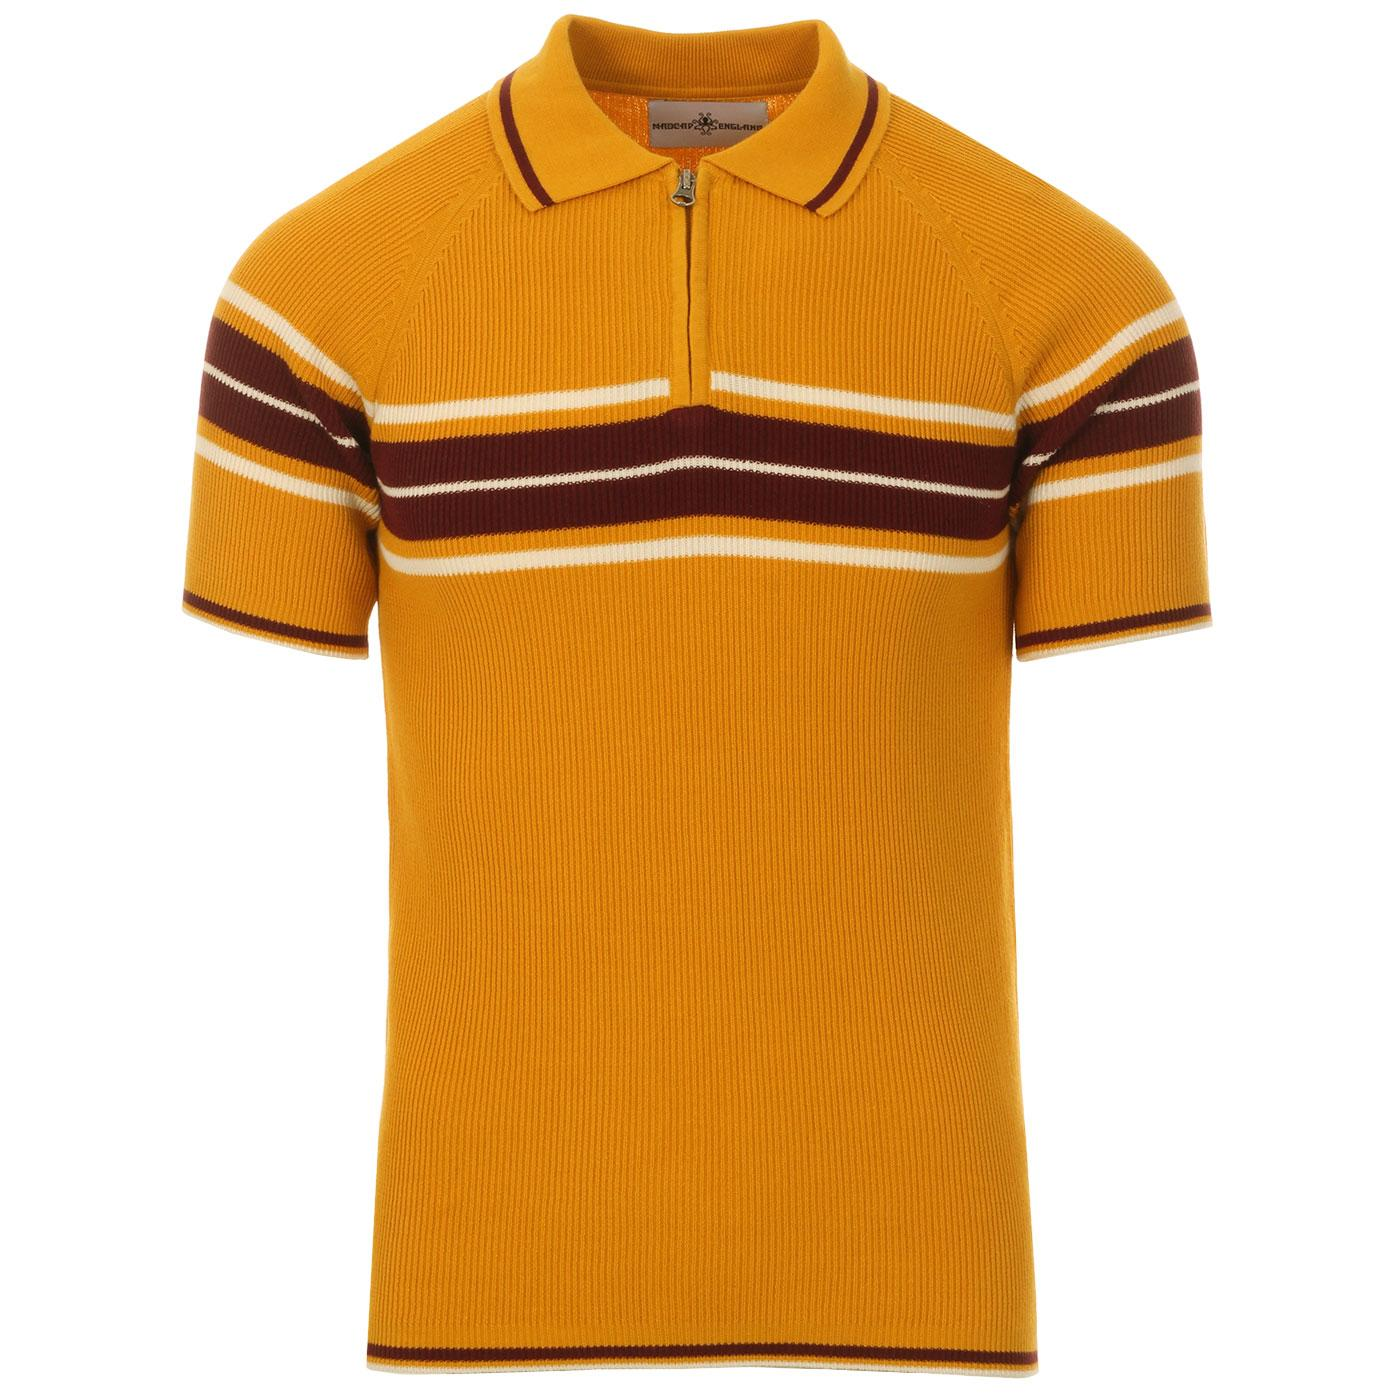 Madcap England Fireball Men's 1960s Mod Ribbed Stripe Zip Neck Polo Shirt in Golden Glow